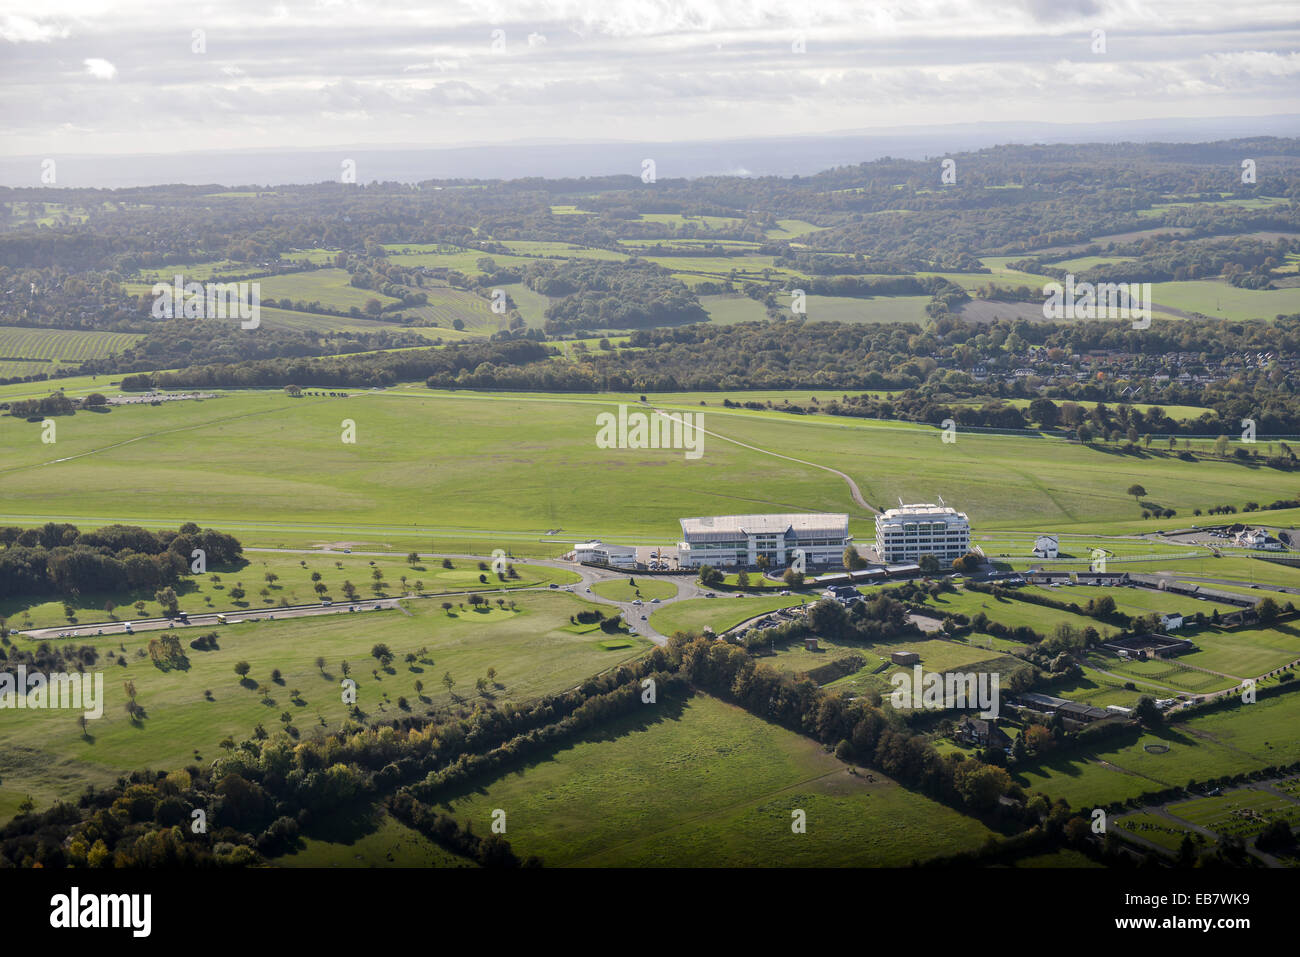 An aerial view of Epsom Downs racecourse and the countryside beyond. Stock Photo